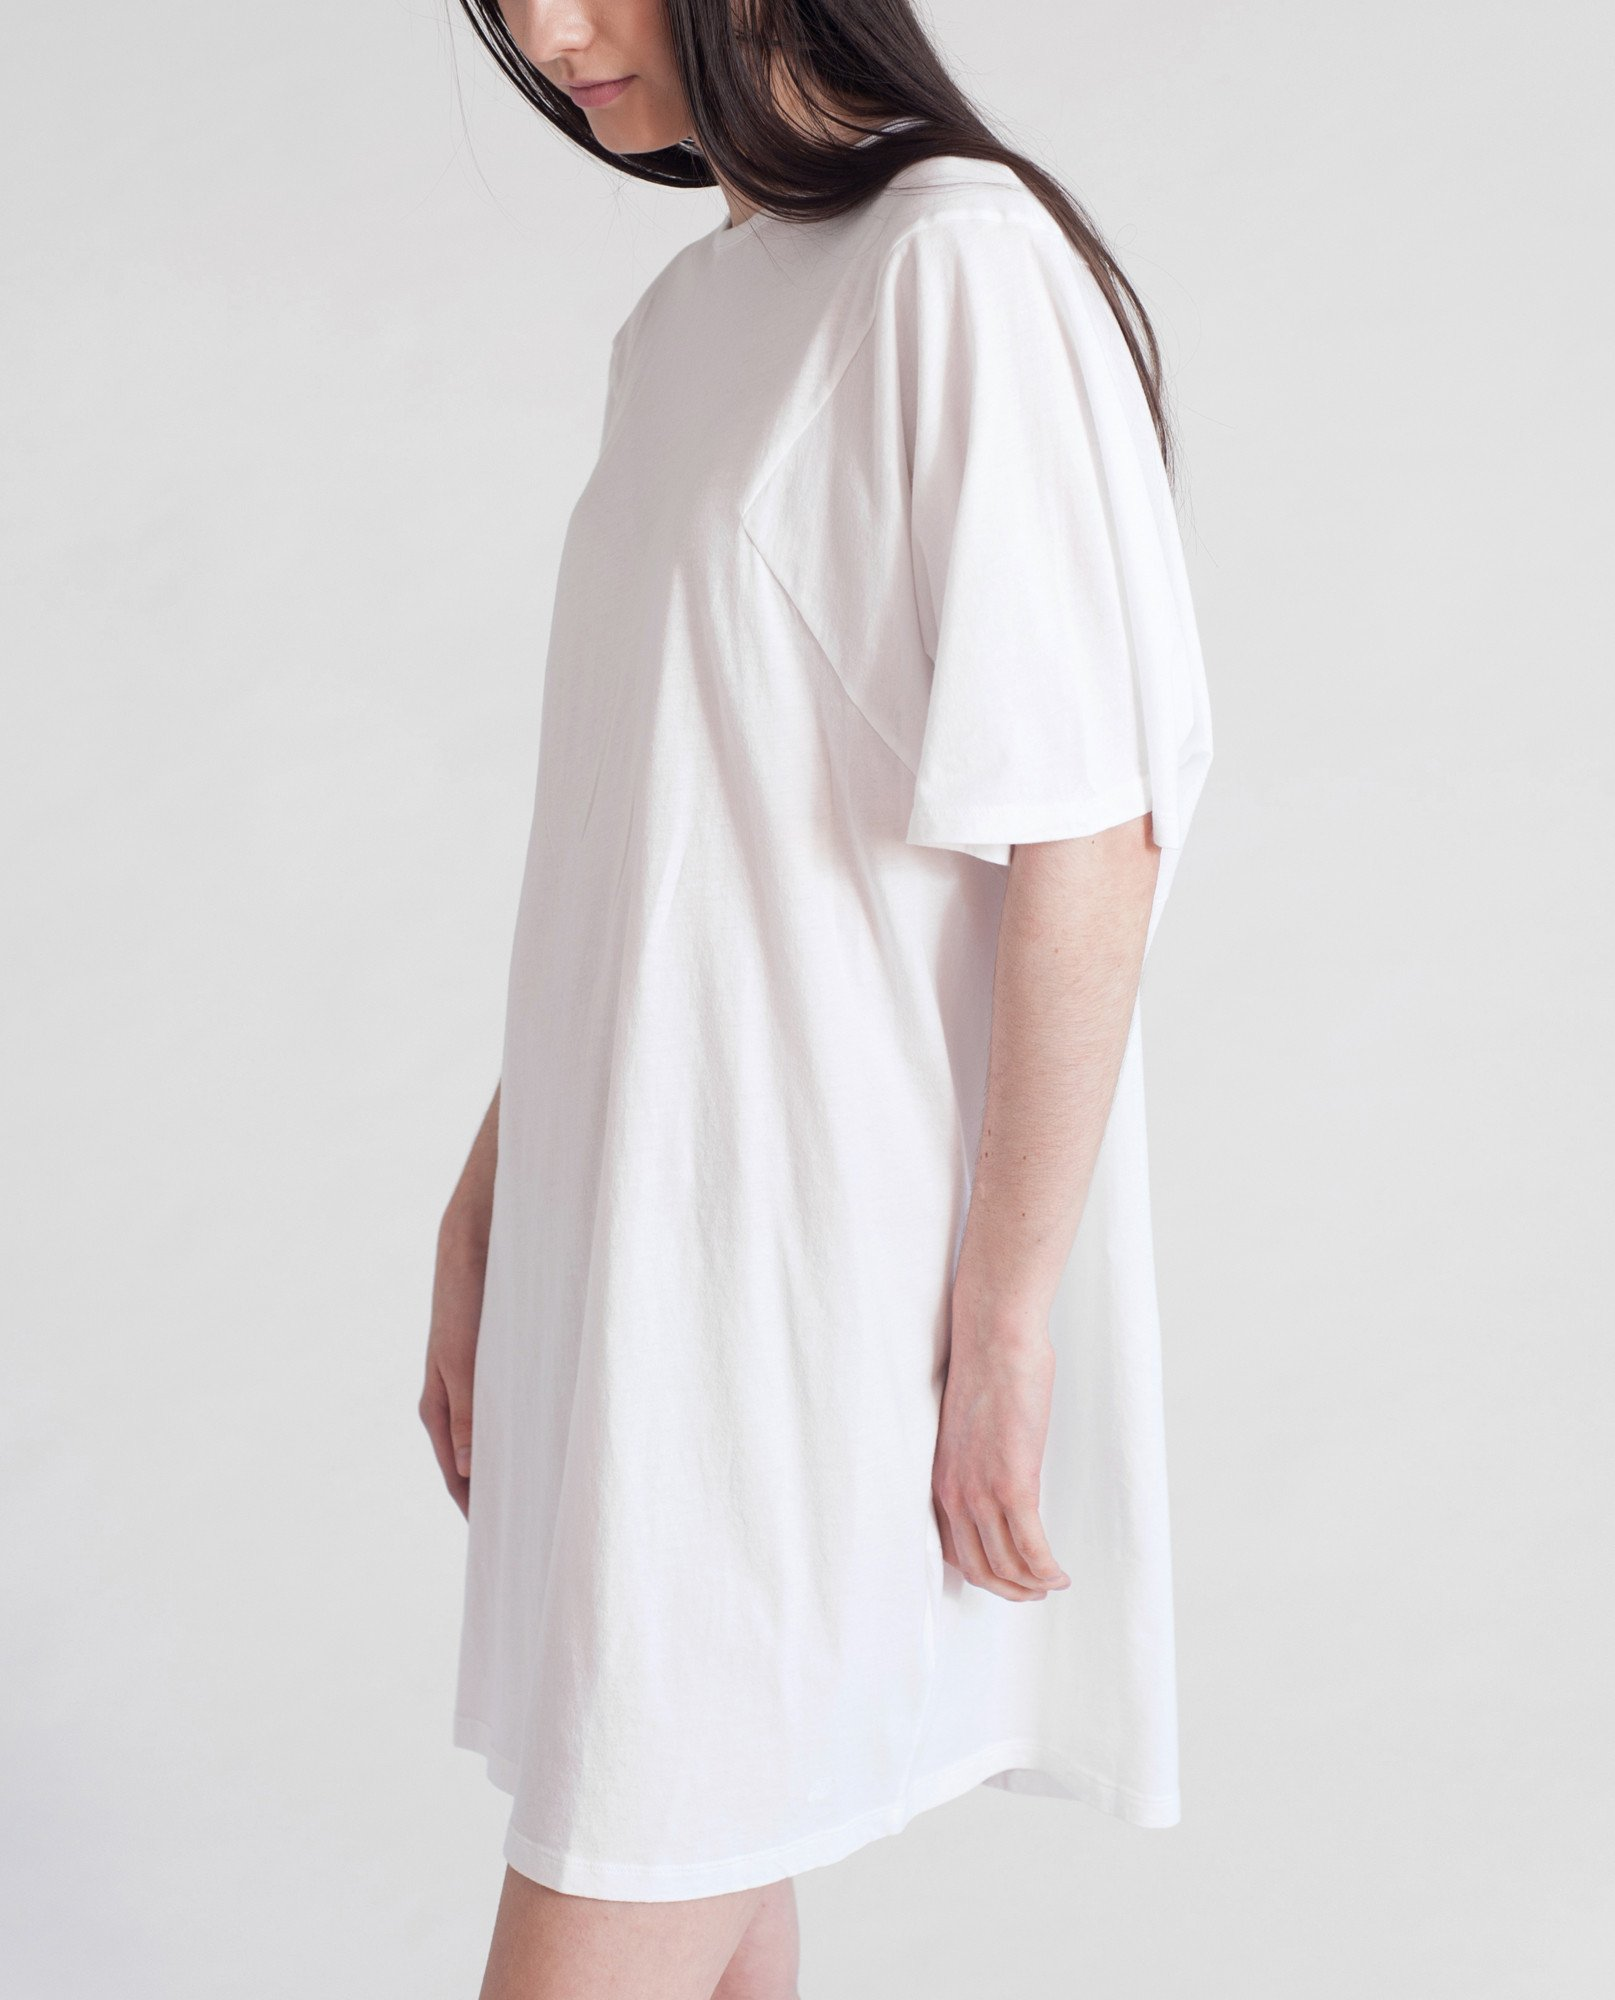 DAISY Organic Cotton Tshirt In White from Beaumont Organic